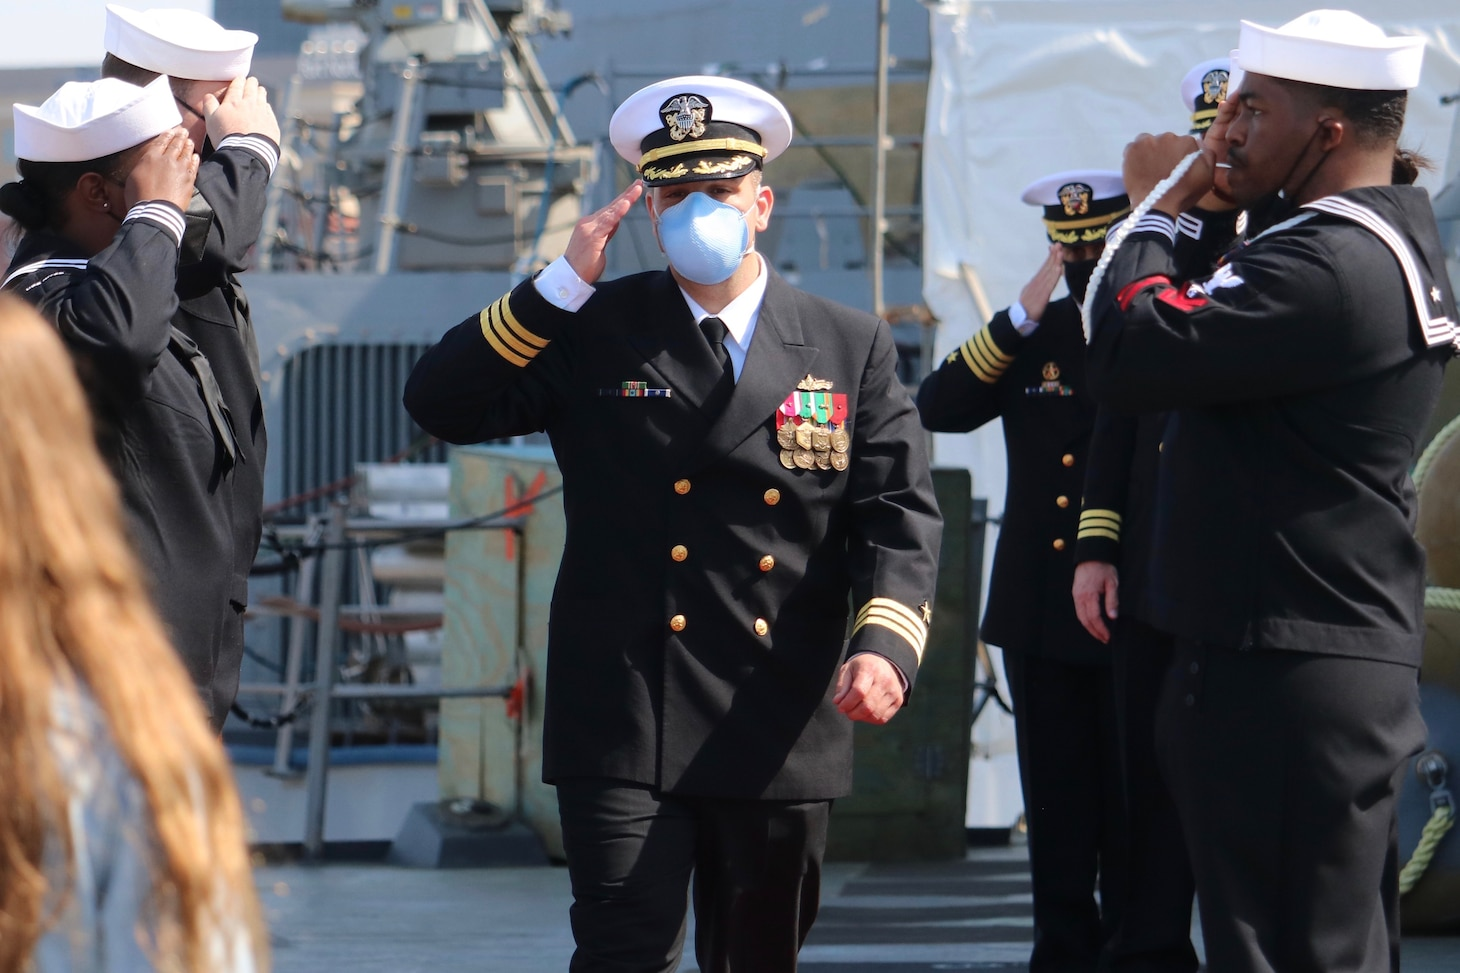 PORTSMOUTH, Va. (April 9, 2021) – Cmdr. Sam T. Sareini is piped aboard before the Arleigh Burke-class guided-missile destroyer USS Nitze's change of command ceremony. Sareini was relieved by Cmdr. Donald J. Curran III during the ceremony. (U.S. Navy photo by Ens. William Fong/Released)